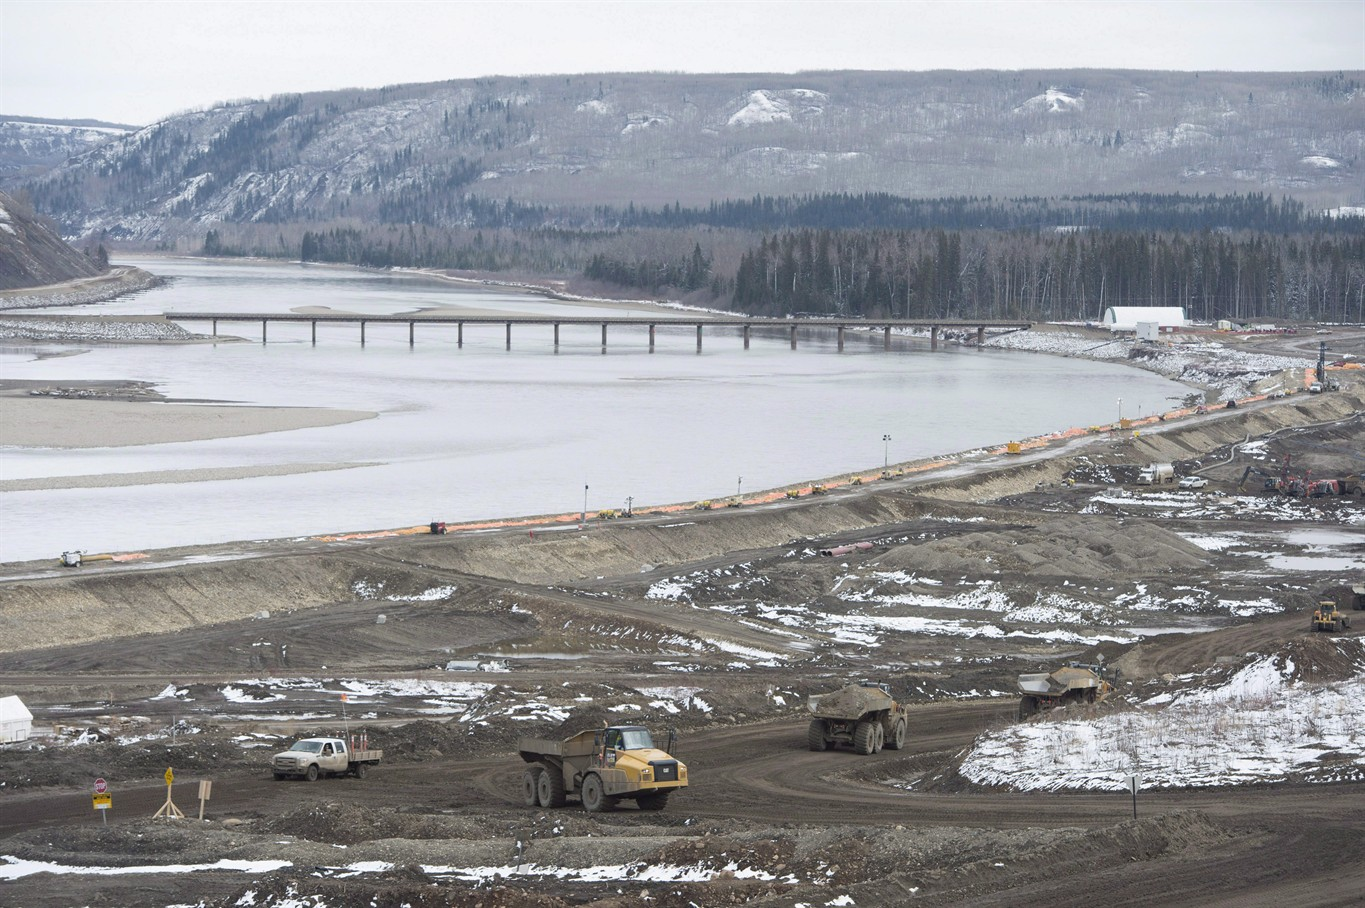 Suspend, restart Site C is least attractive scenario